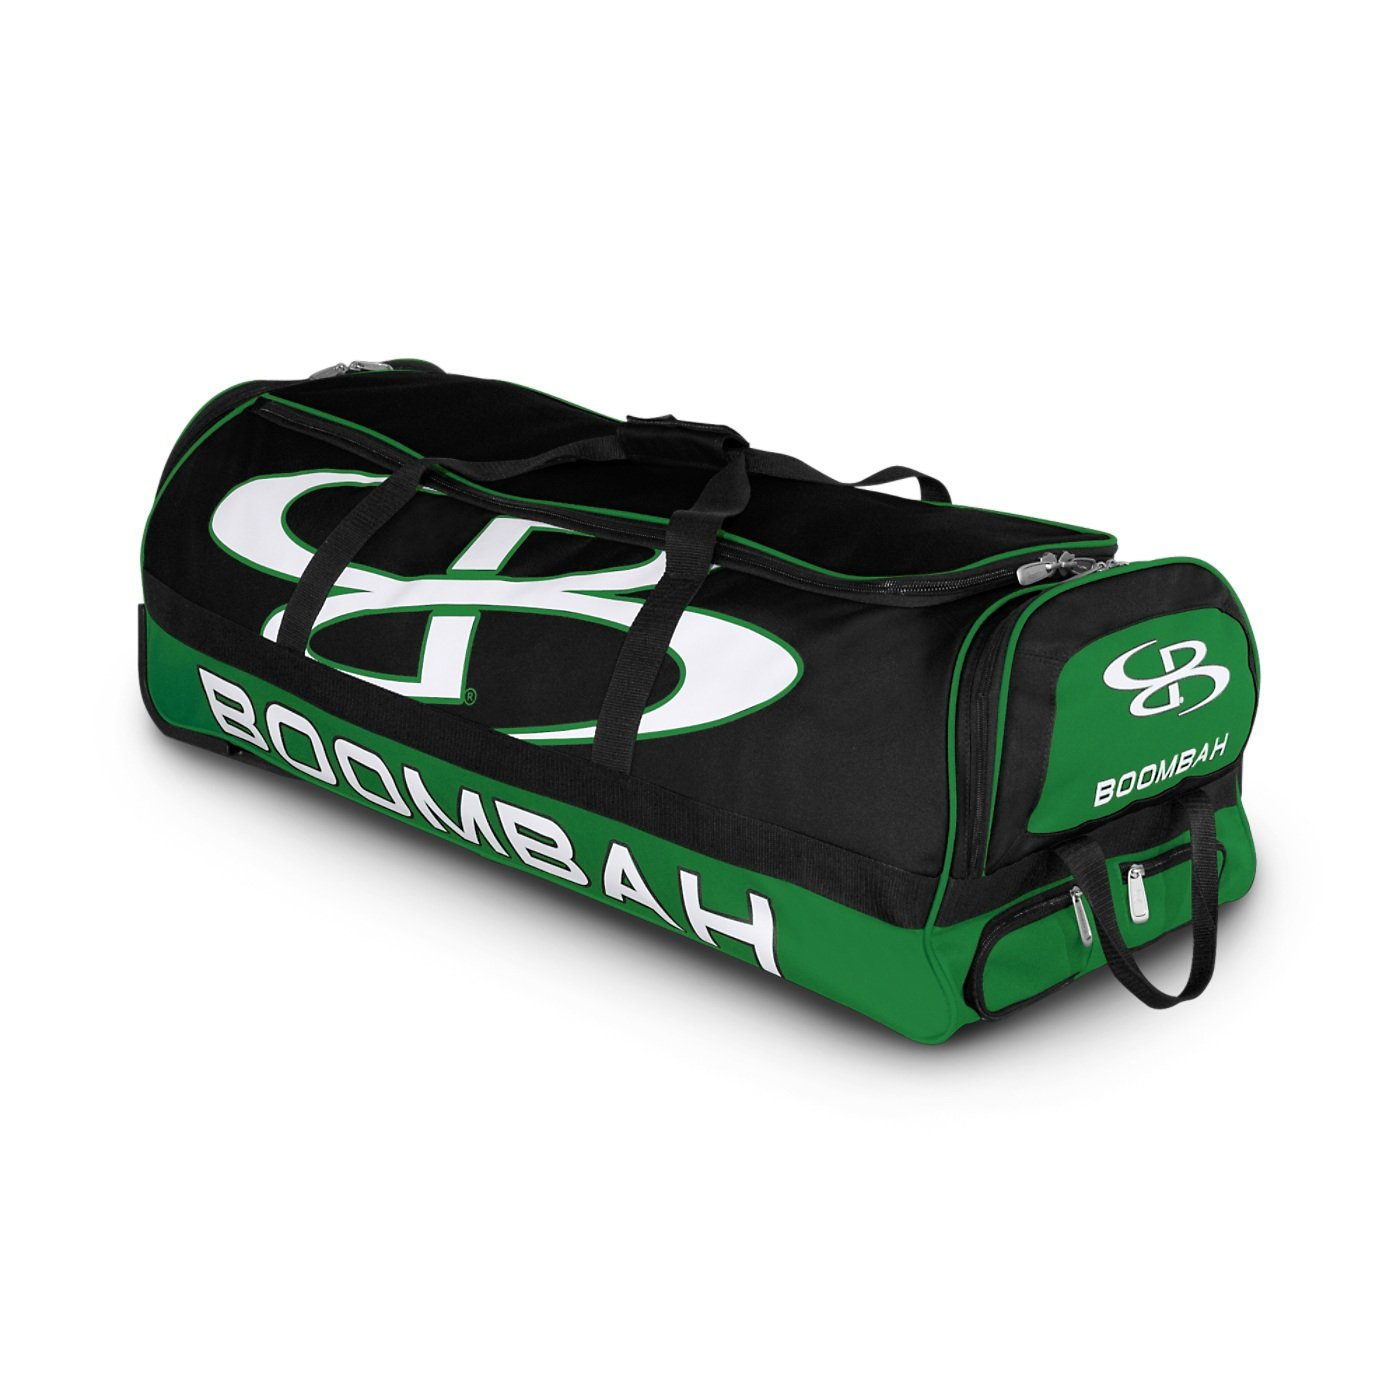 Boombah Brute Rolling Baseball / Softball Bat Bag - 35'' x 15'' x 12-1/2'' - Black/Kelly Green - Holds 4 Bats and Room for Gear - Wheeled Bag